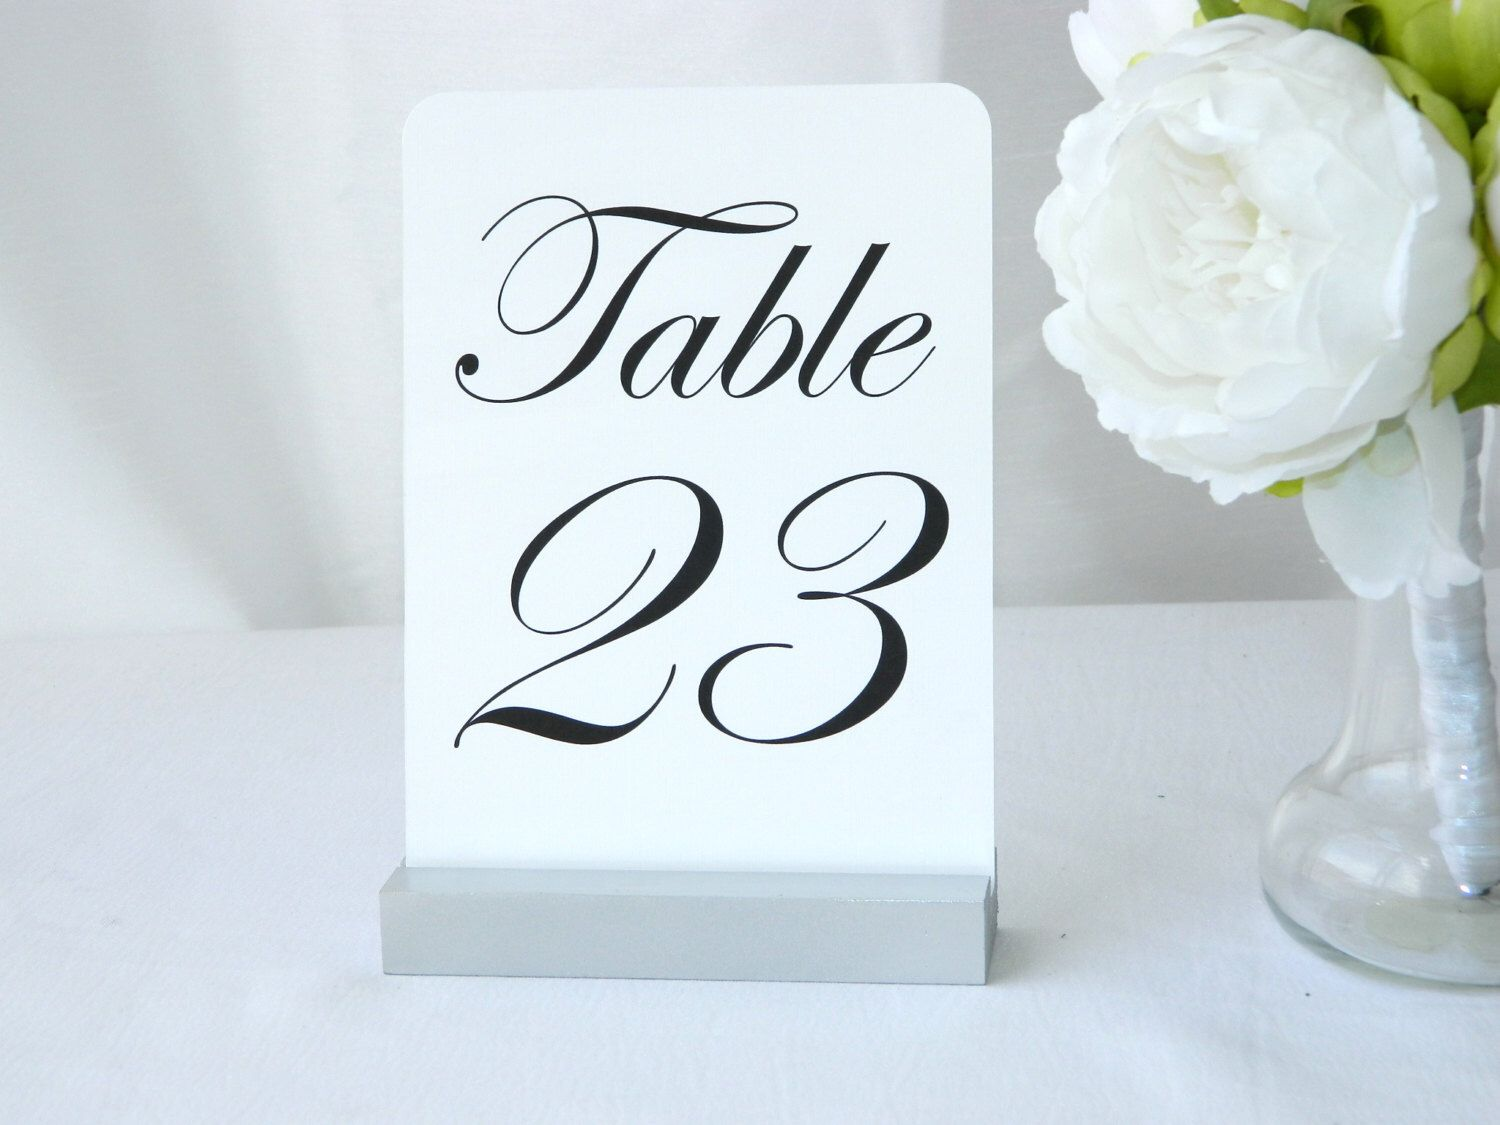 Table Number Holder + Table Number Holder + Silver Wedding Table Number Holder + Silver Table Number Holder di Gallery360 su Etsy https://www.etsy.com/it/listing/475266429/table-number-holder-table-number-holder